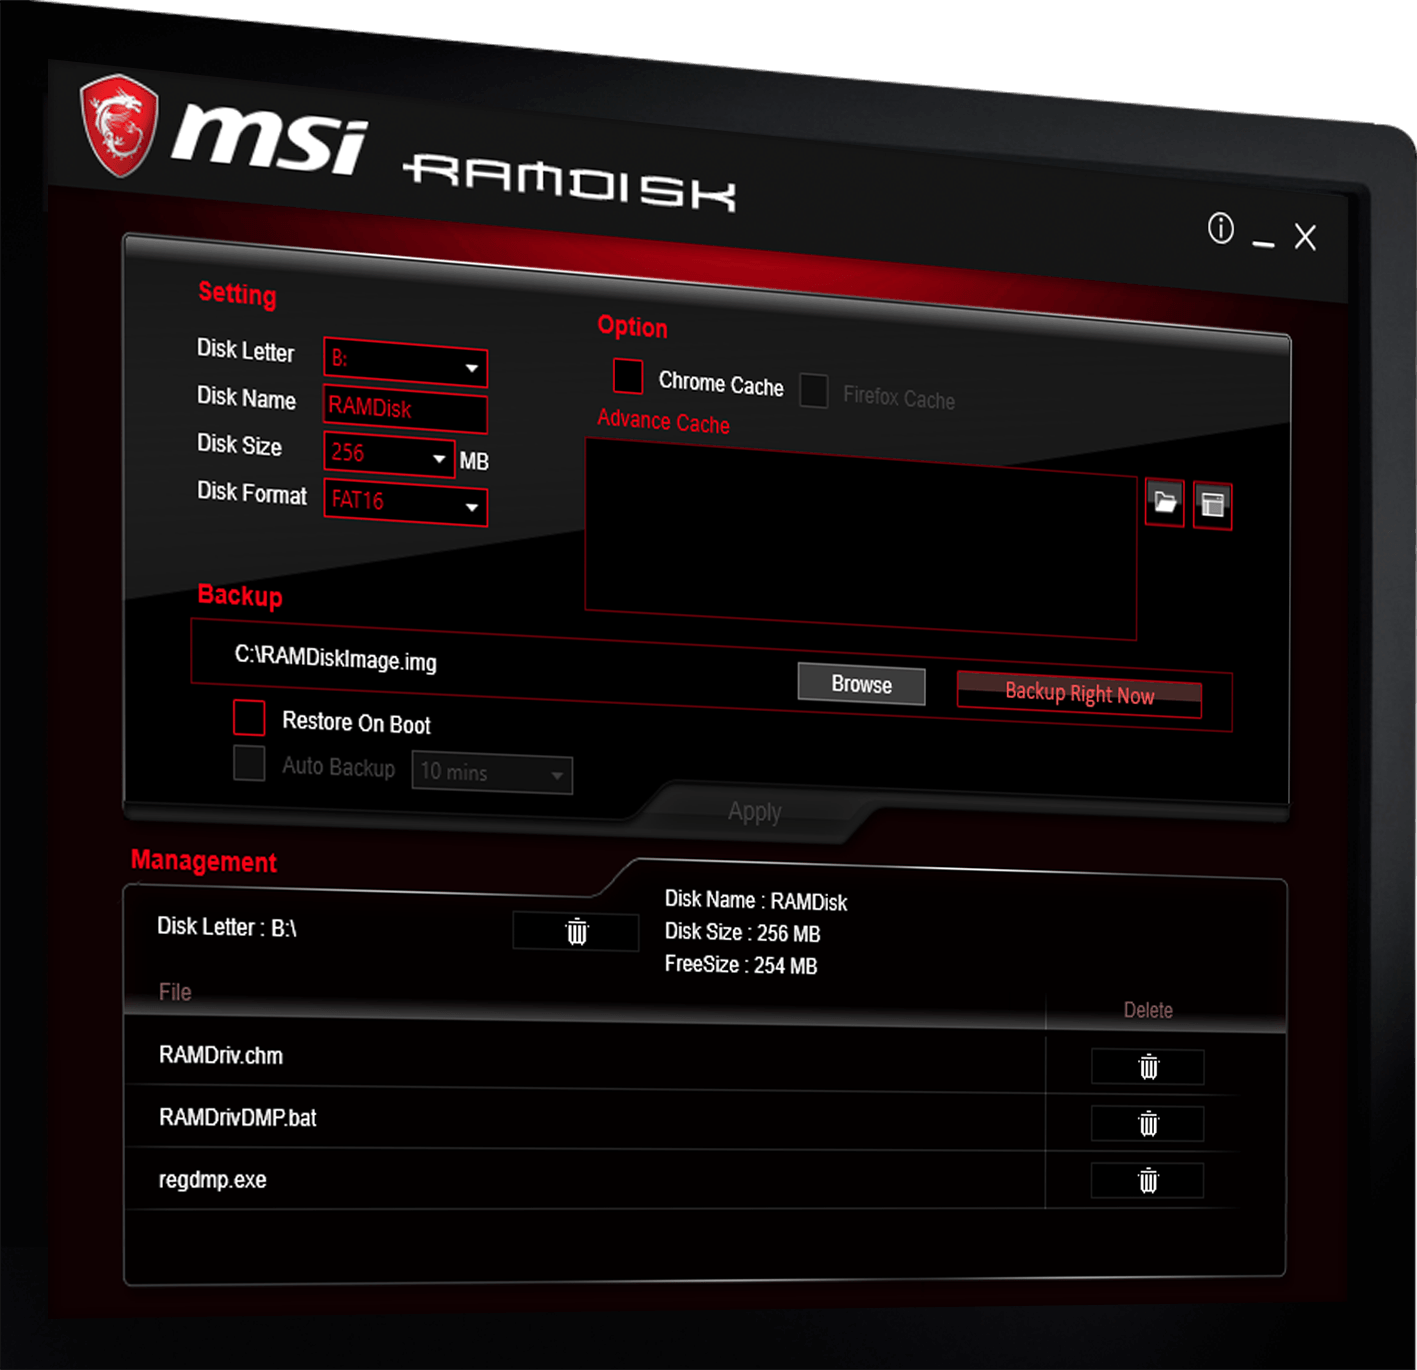 https://asset.msi.com/global/picture/image/feature/mb/Z270/softwares/ramdiskScreen.png